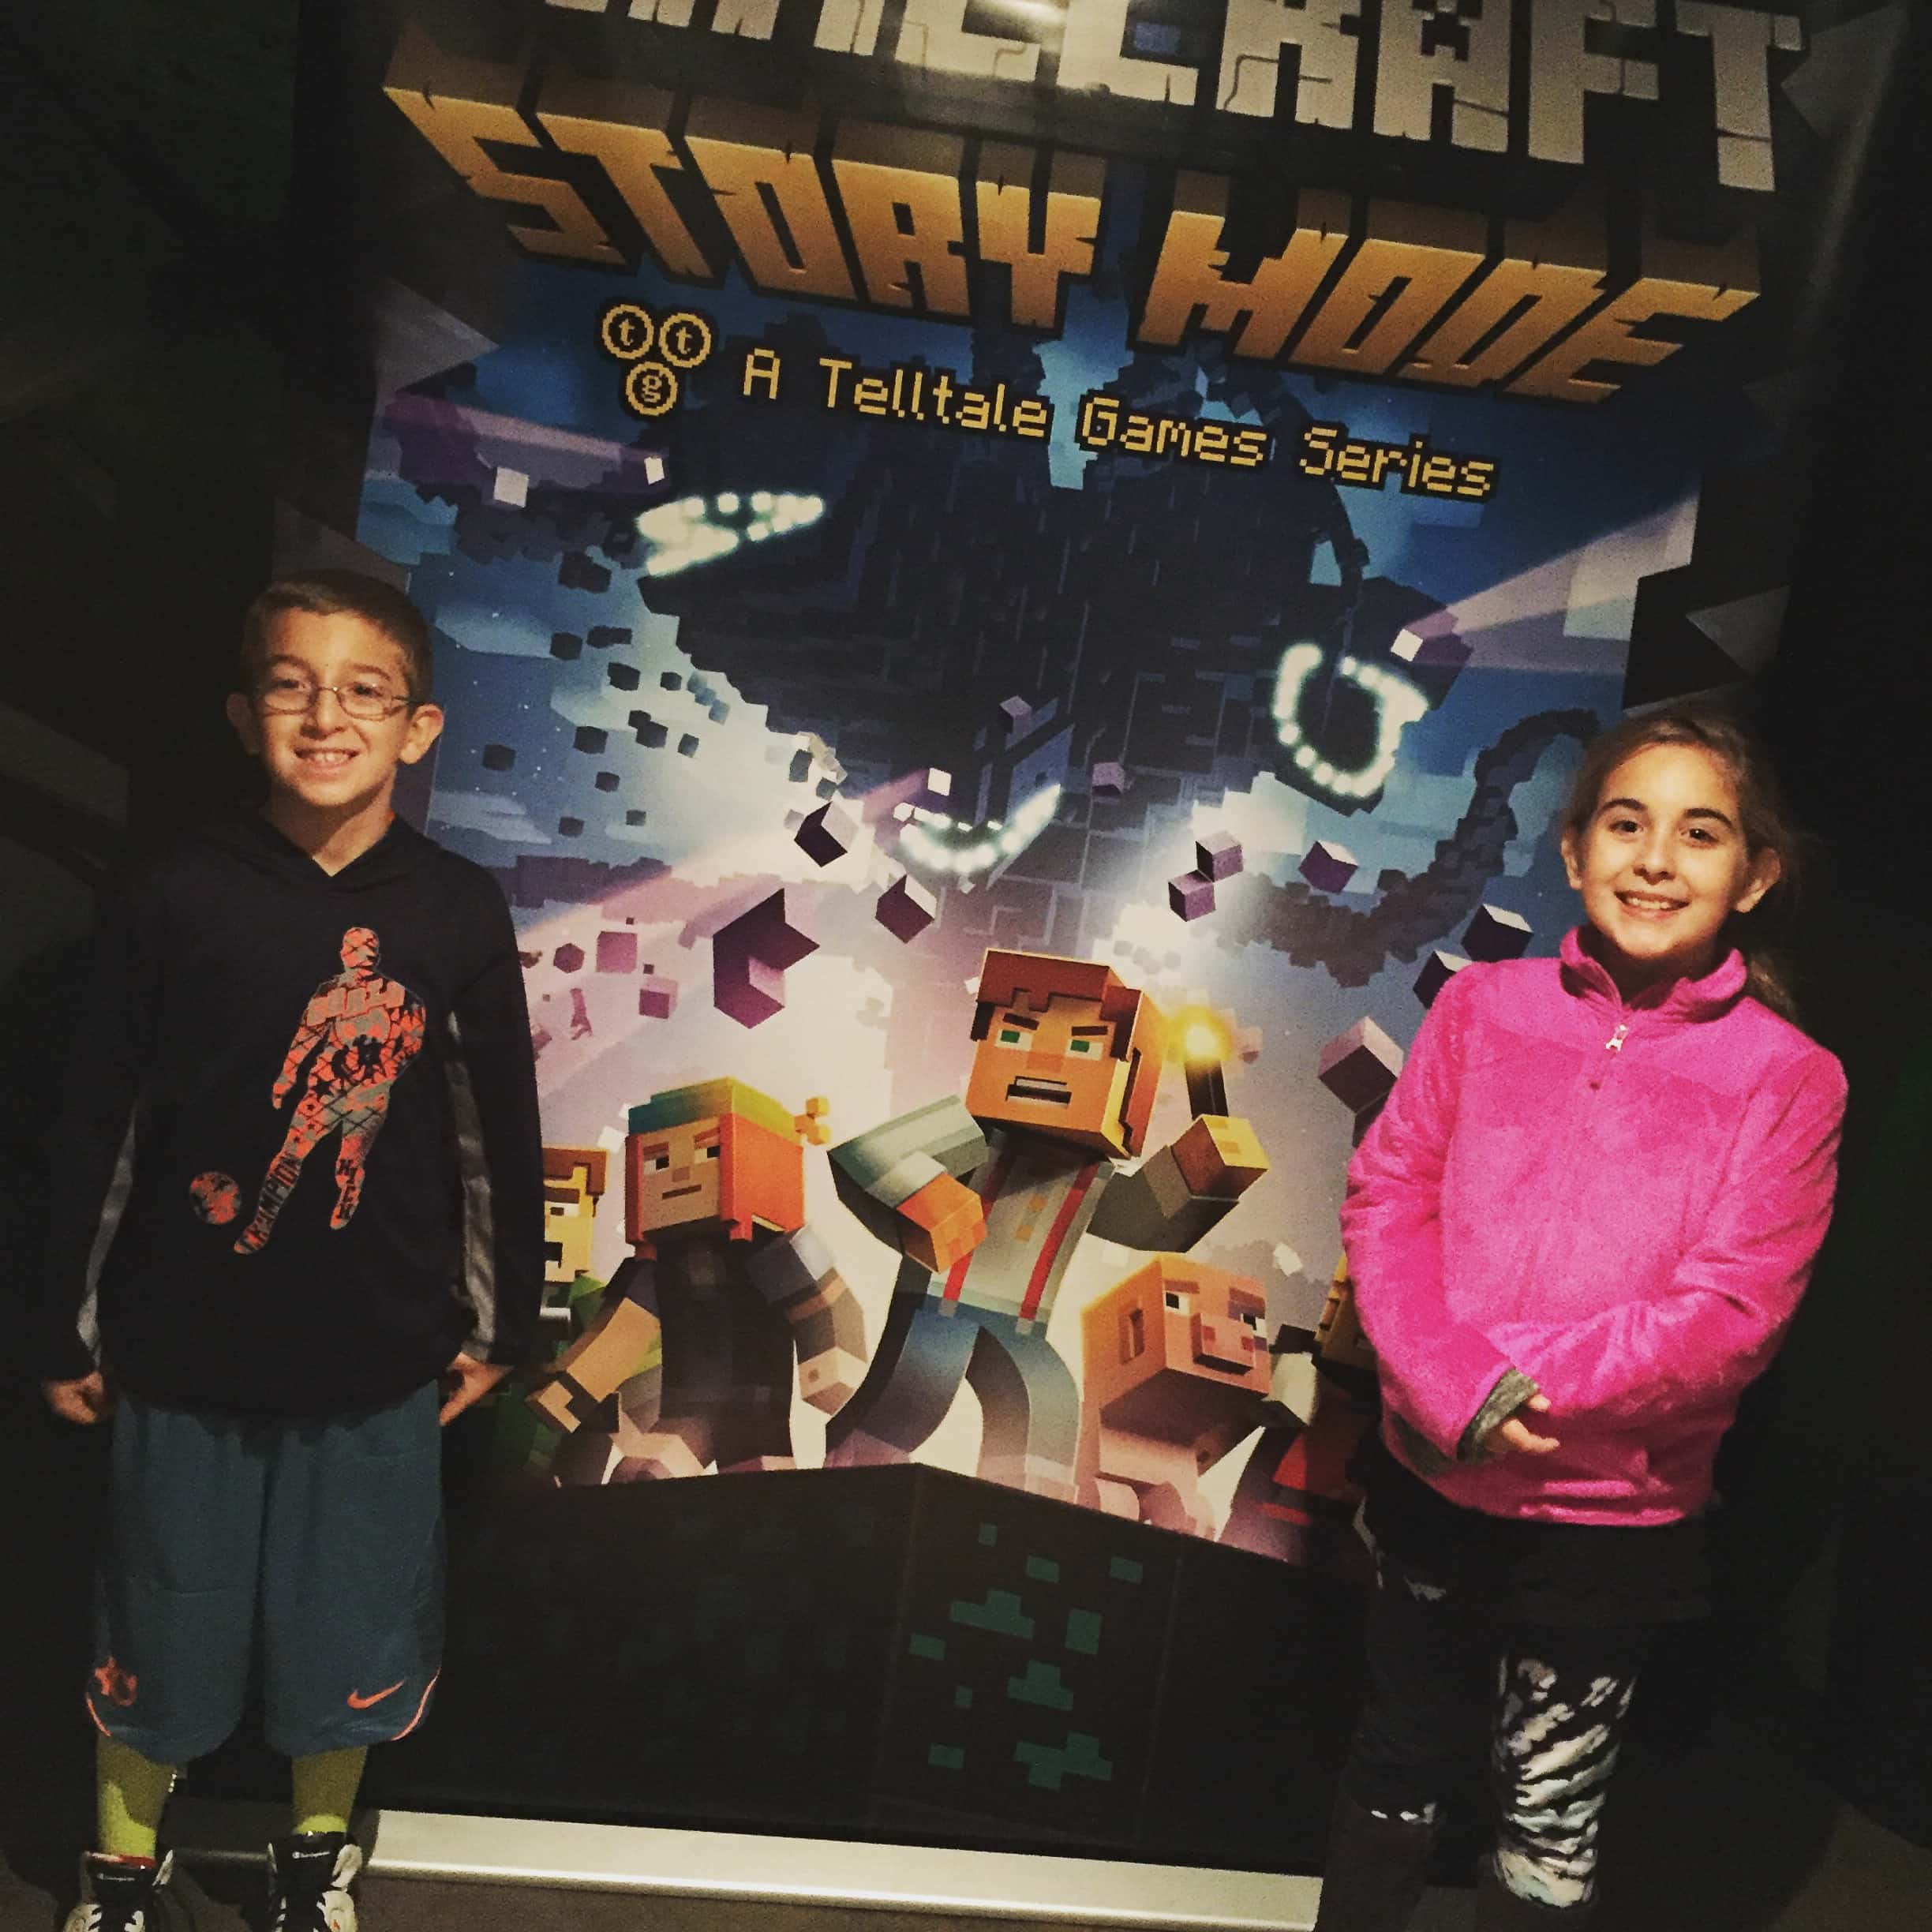 Minecraft: Story Mode - A Telltale Games Series - Is a Great Family Time Game